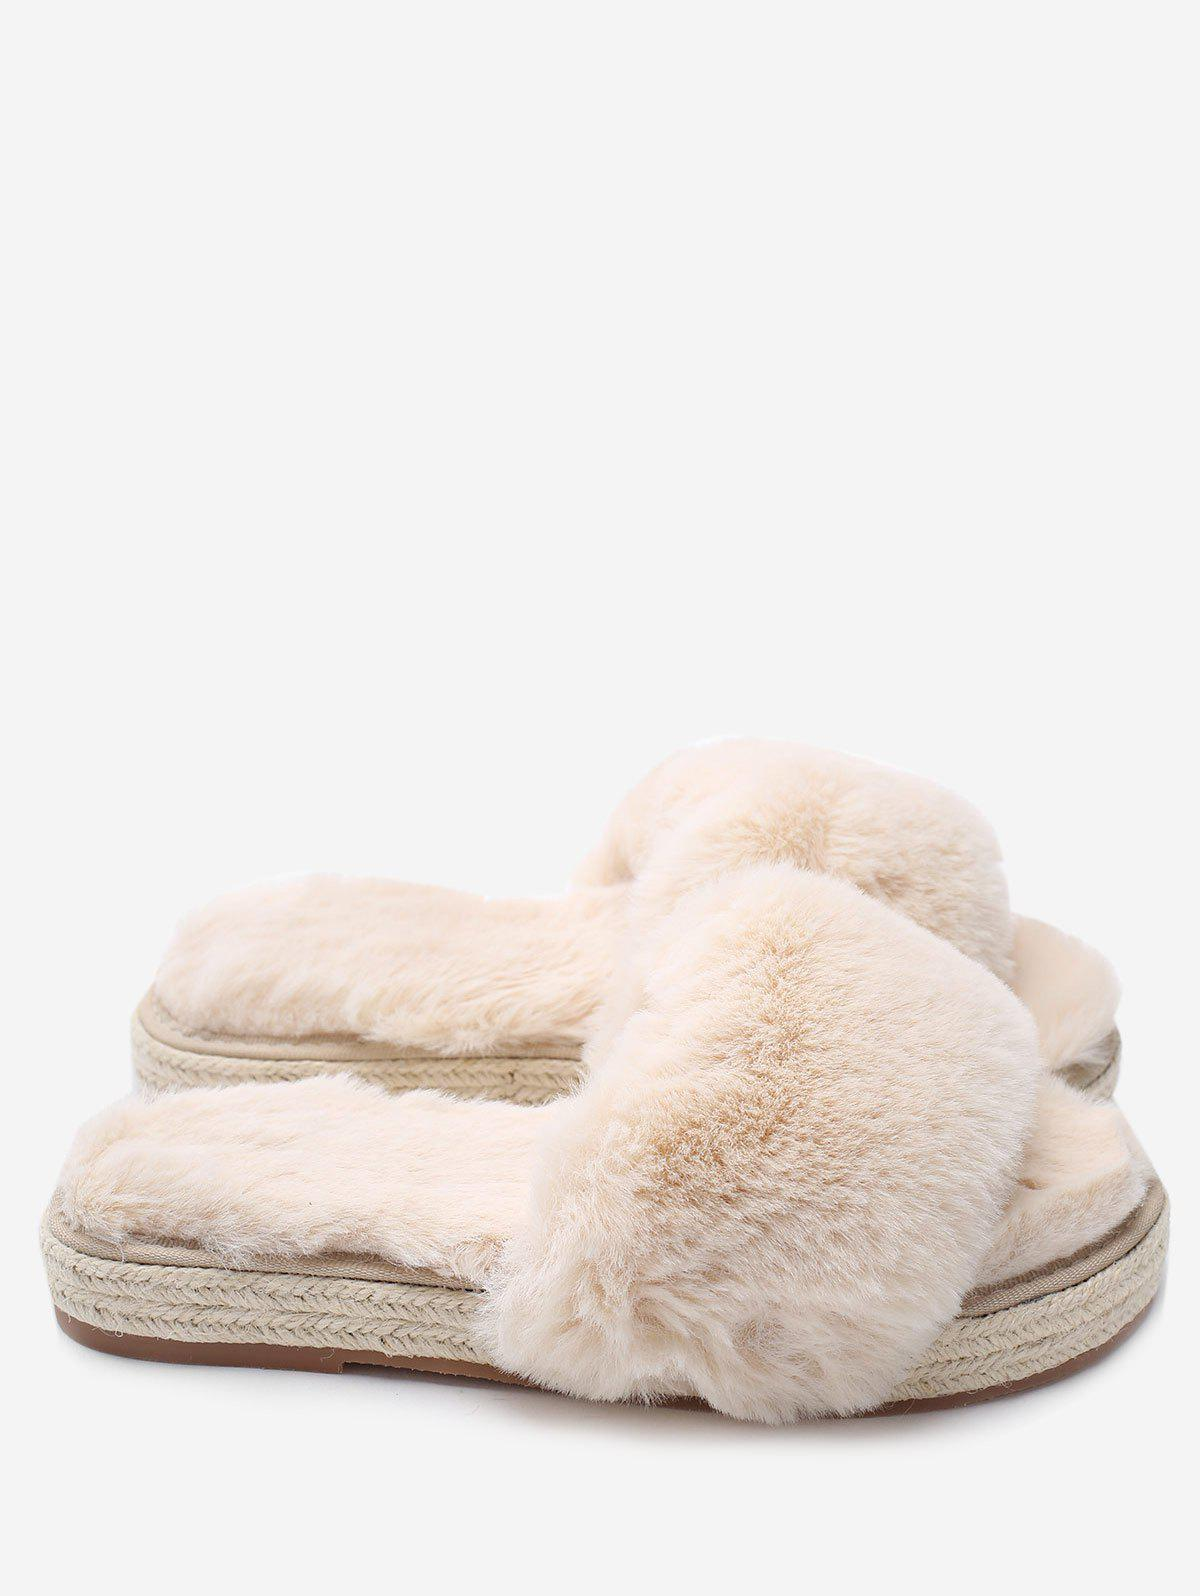 Espadrille Sole Faux Fur Slippers - APRICOT 35